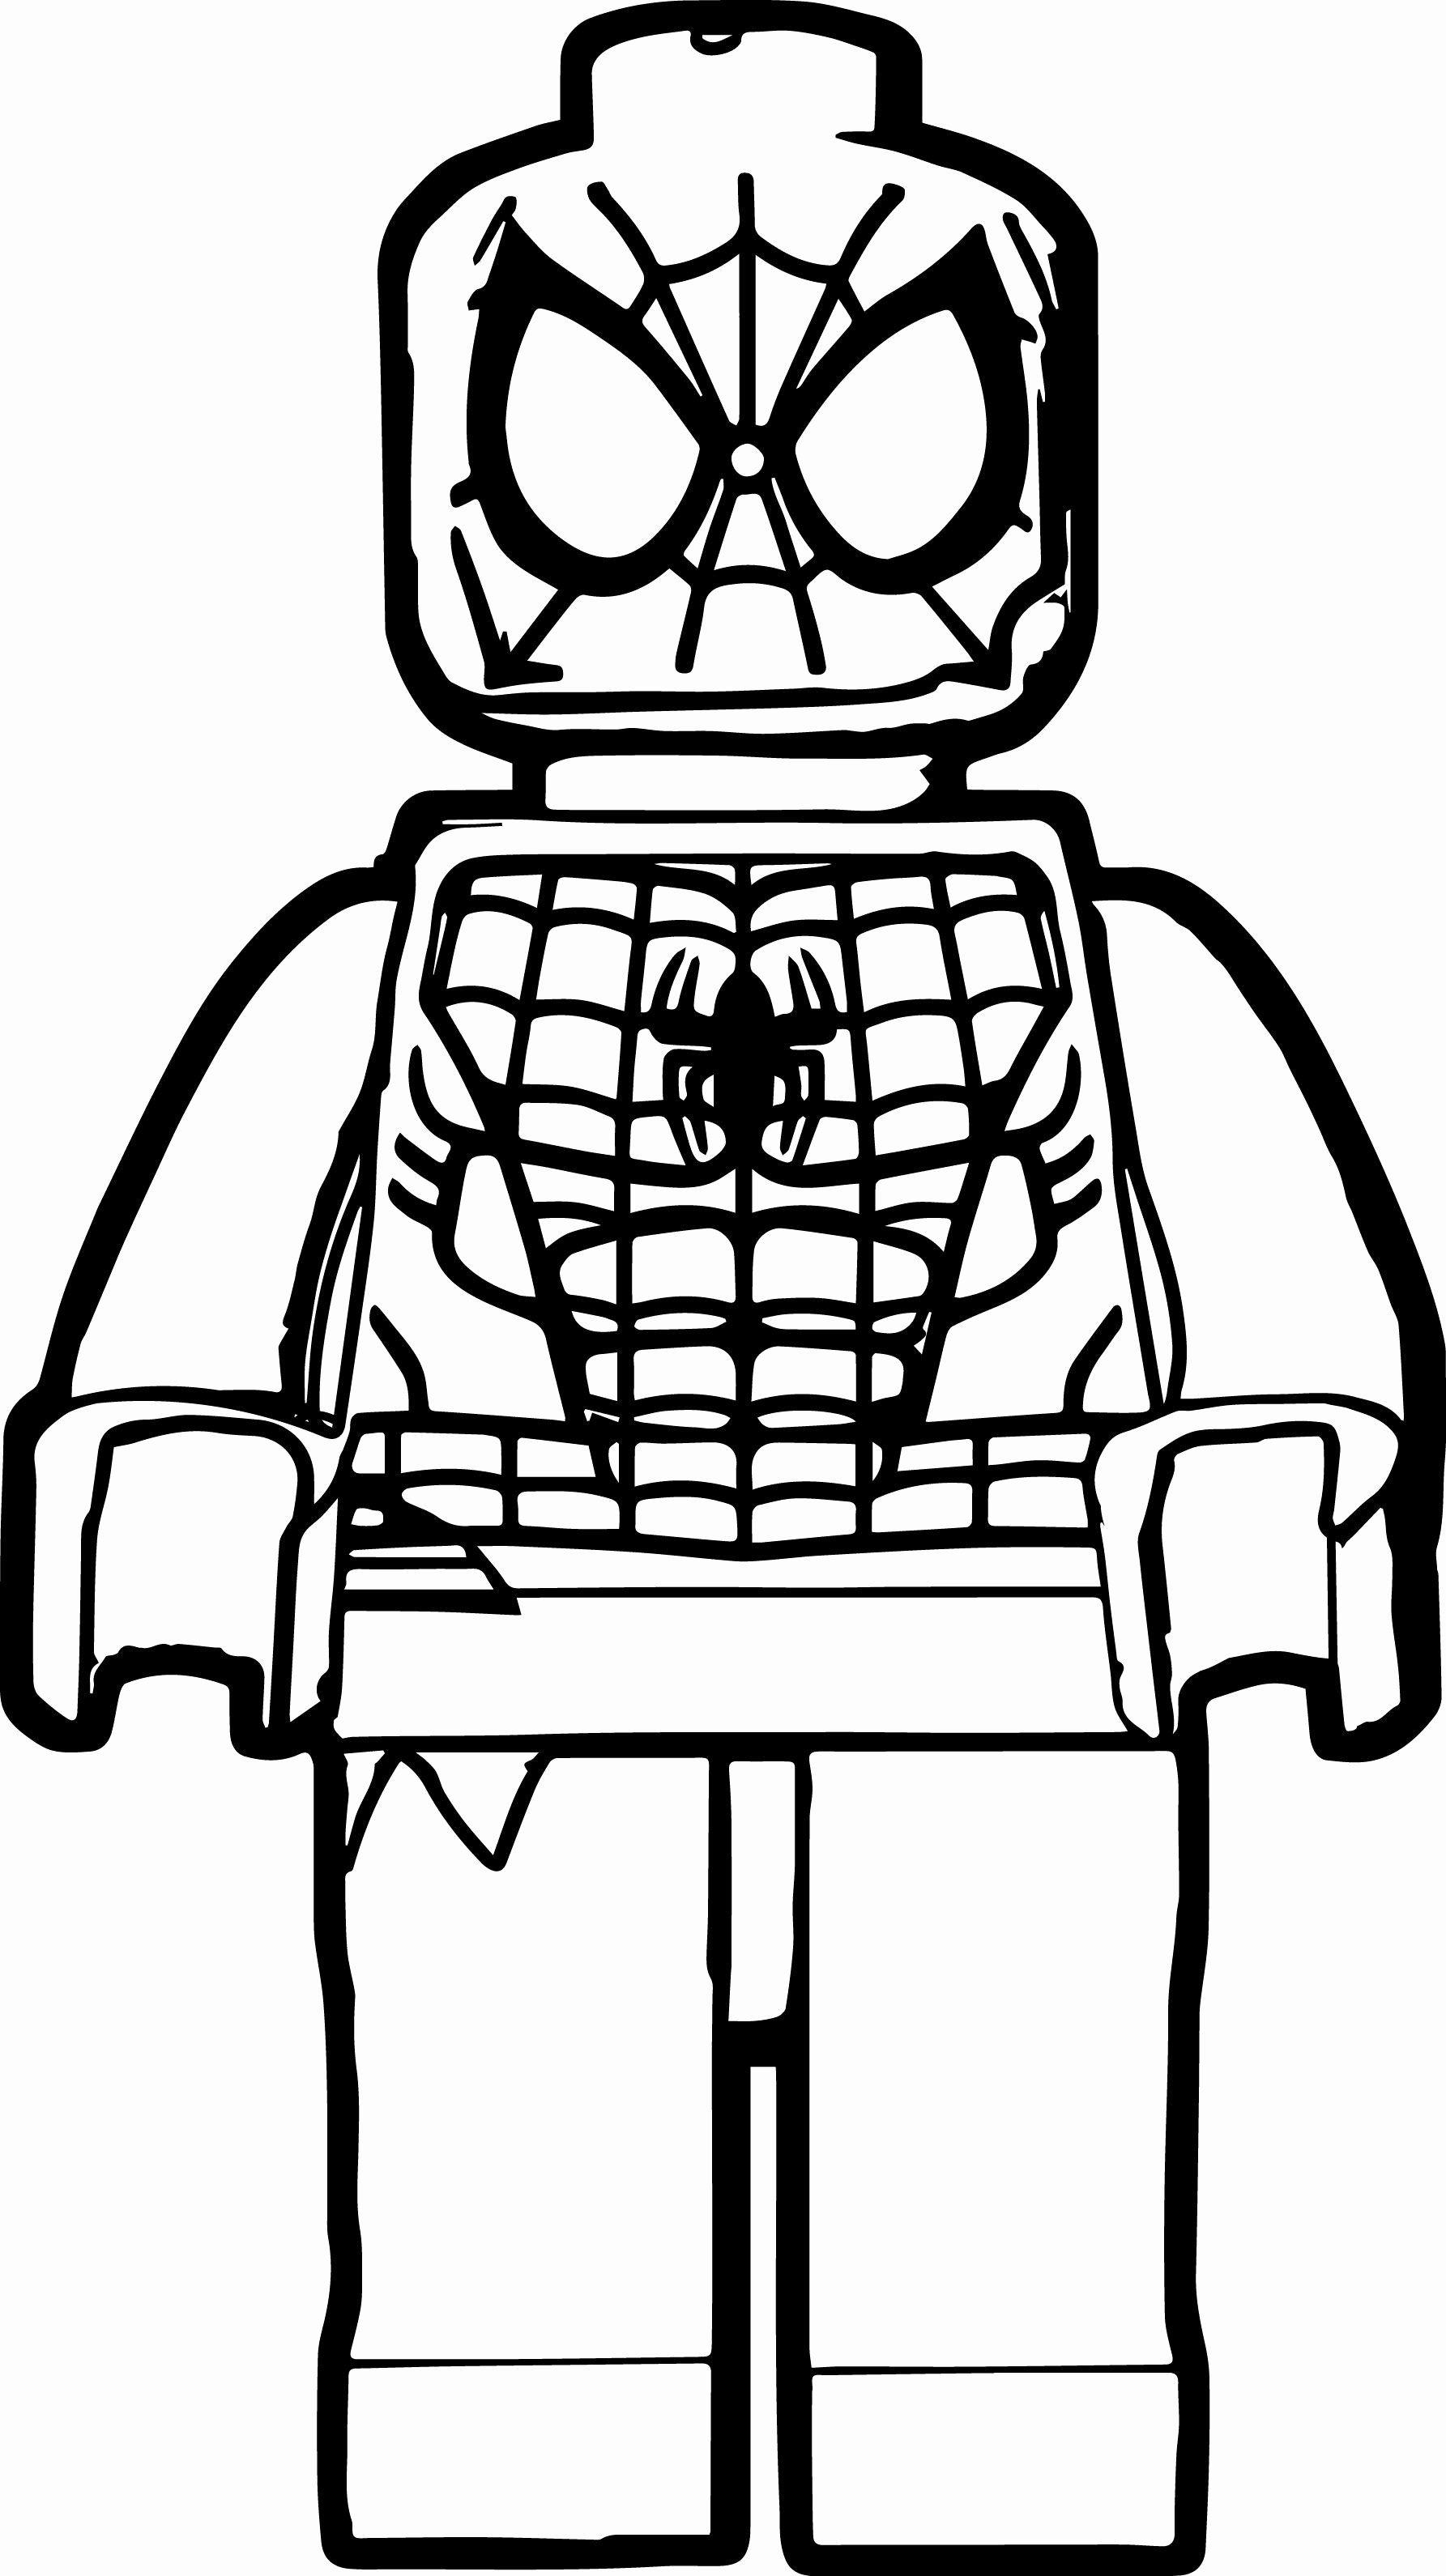 Lego Man Coloring Page Awesome Spider Man Lego Coloring Page